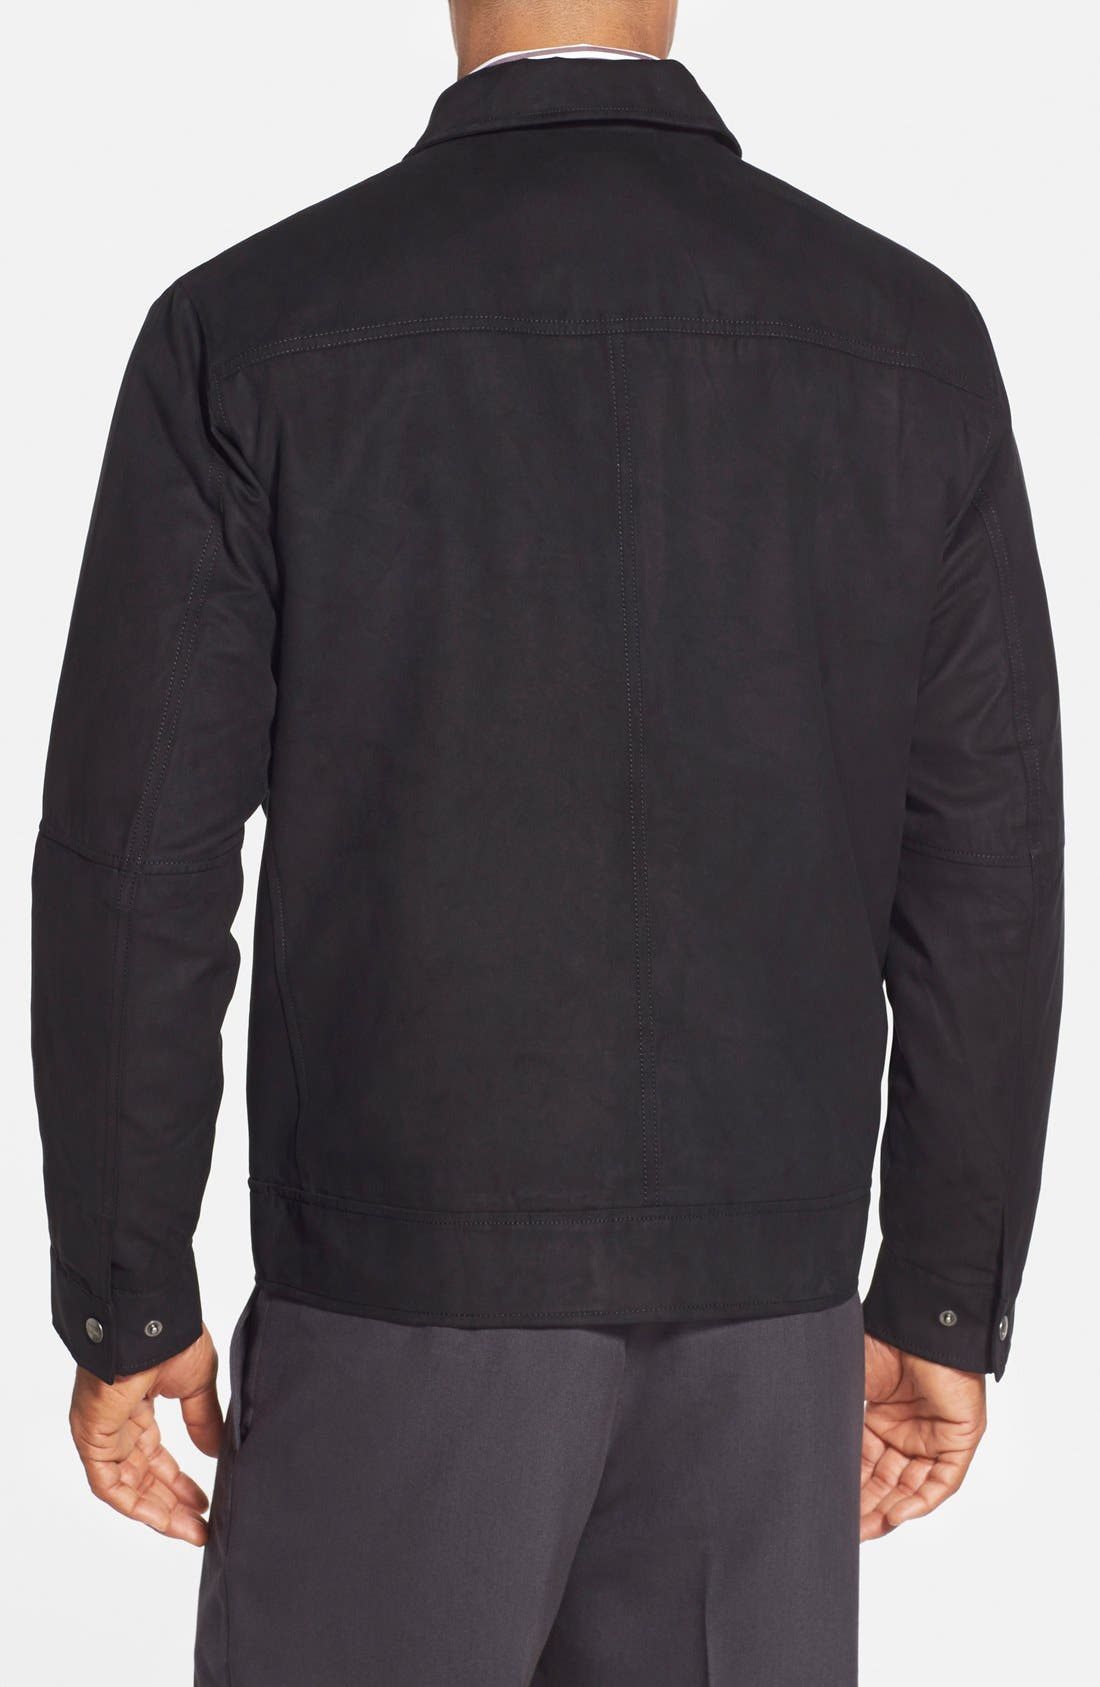 'Roosevelt' Classic Fit Water Resistant Full Zip Jacket,                             Alternate thumbnail 5, color,